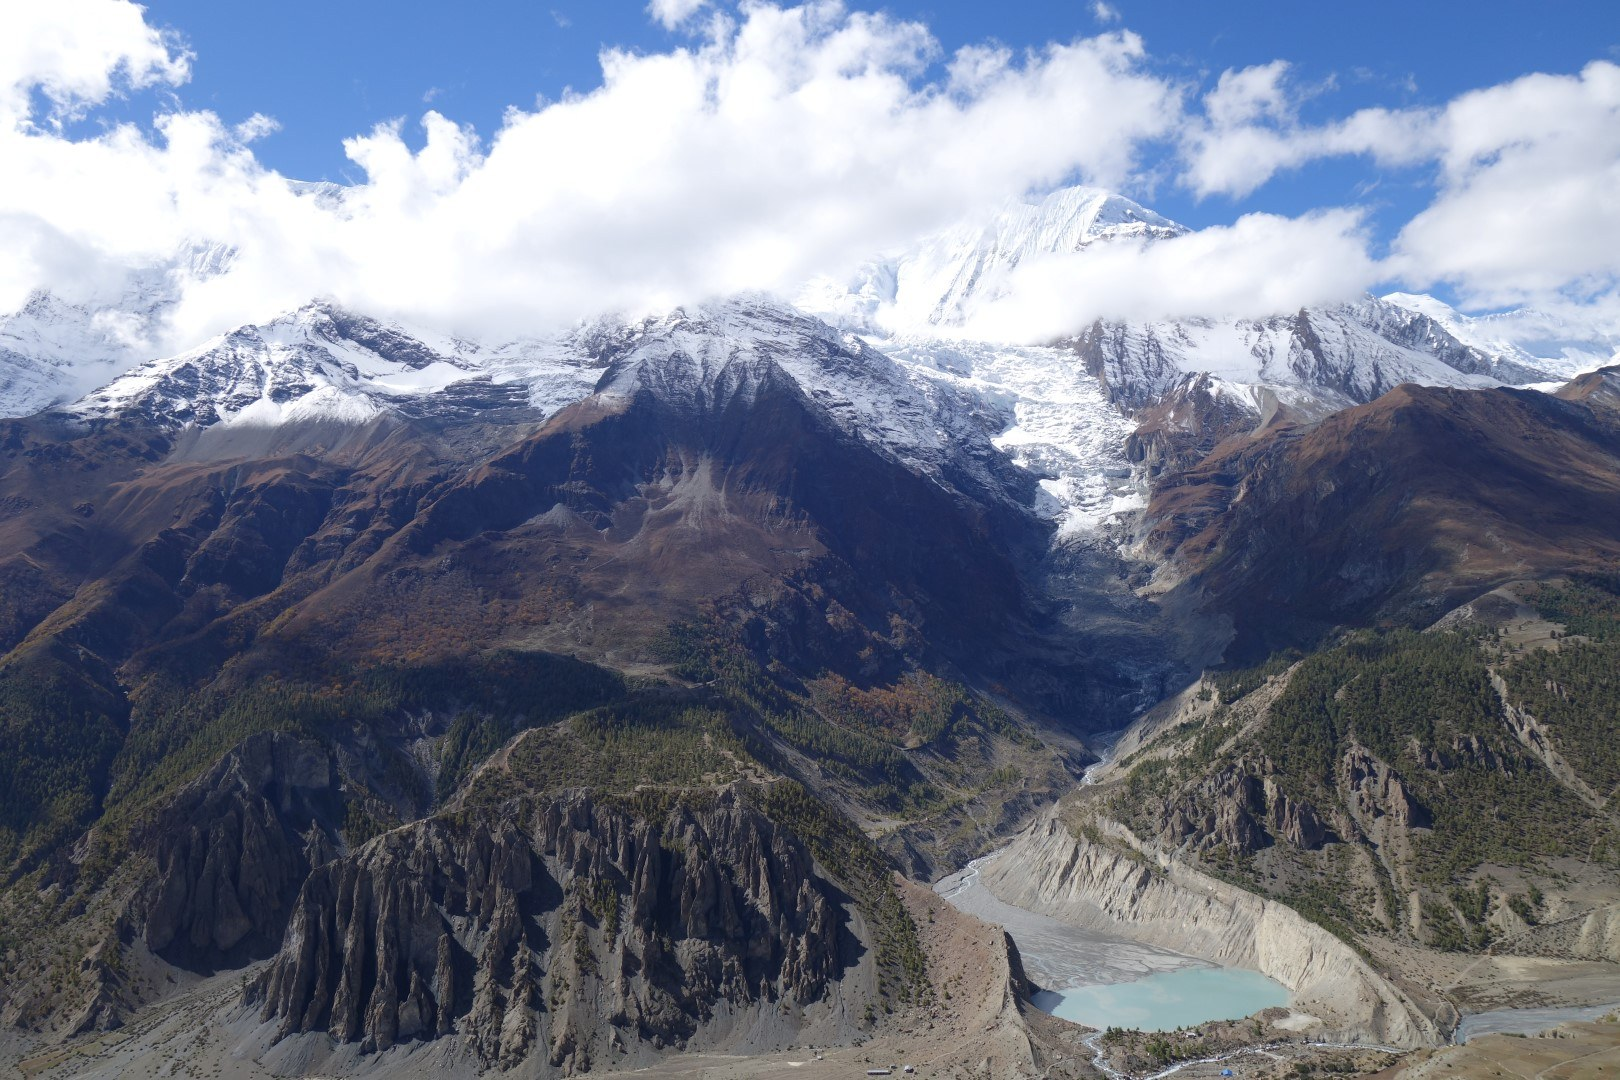 View from Praken Gompa - Annapurna Circuit Route